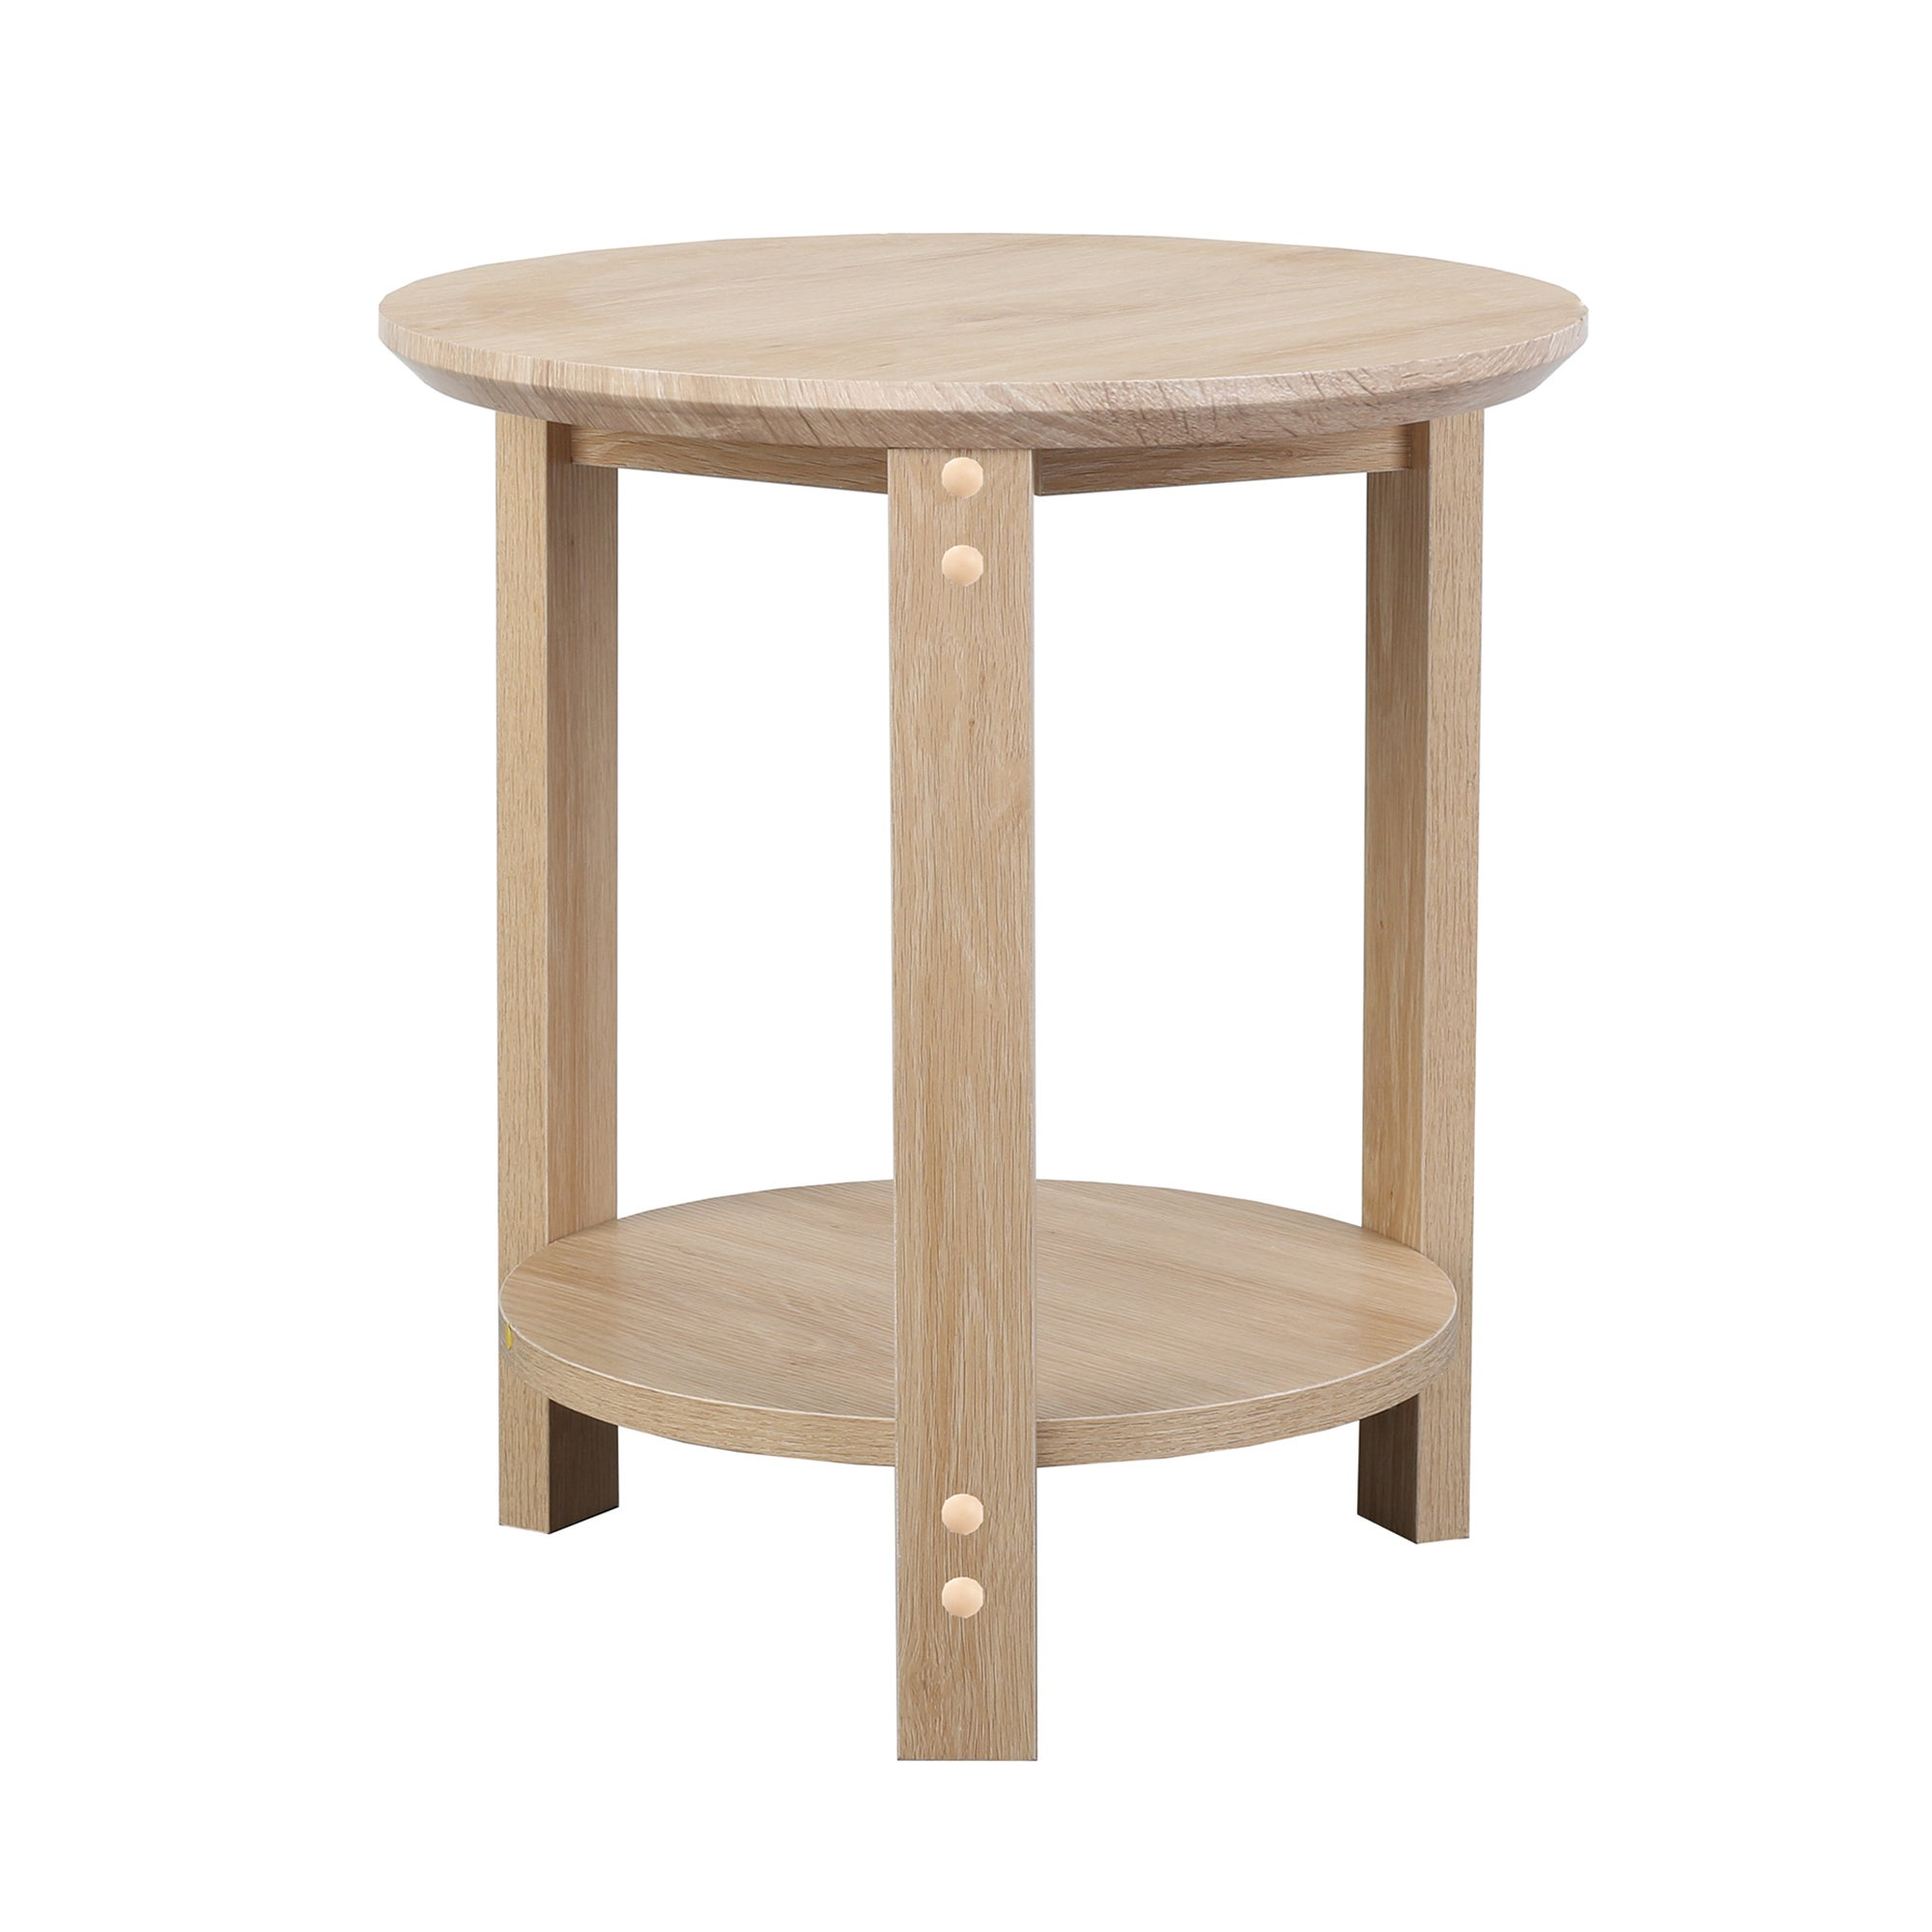 Photo of Lisbon side table natural